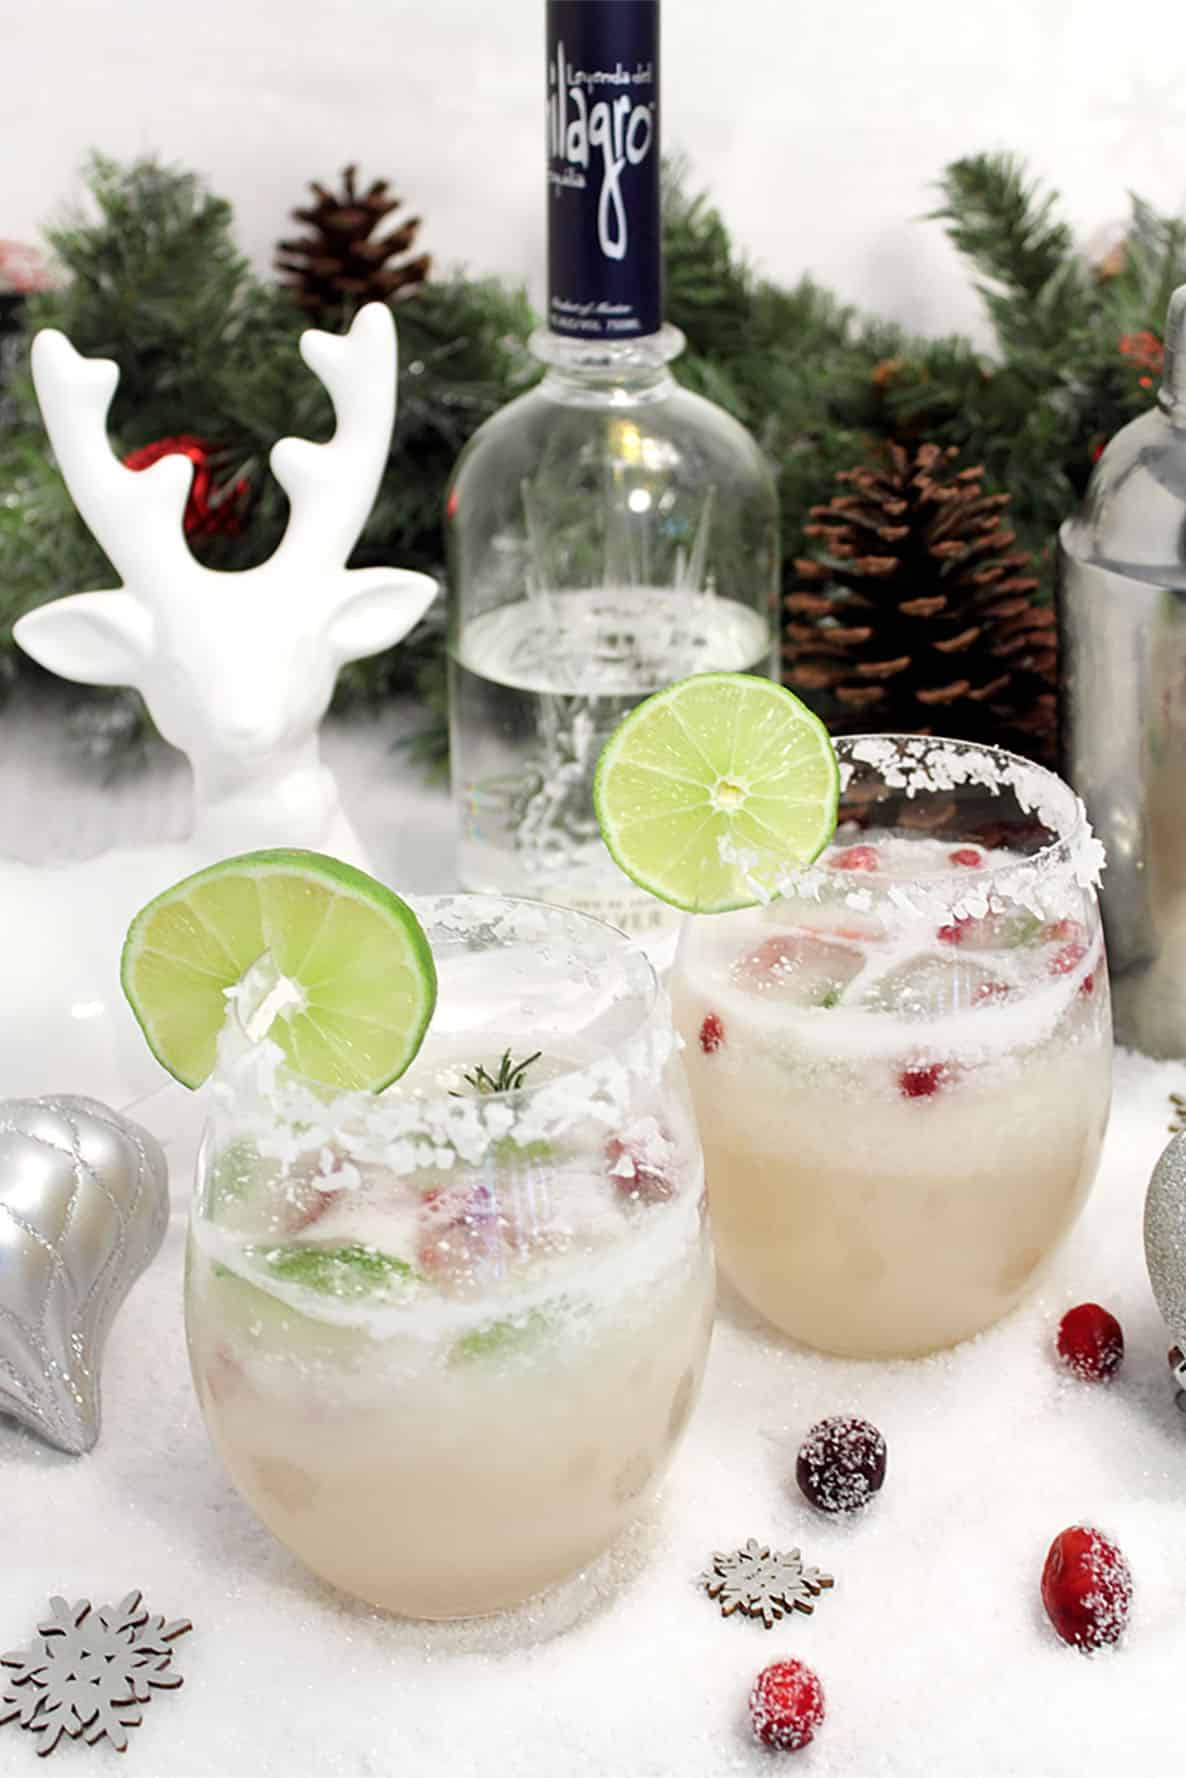 Two margaritas with lime wedge on white table with deer in background.